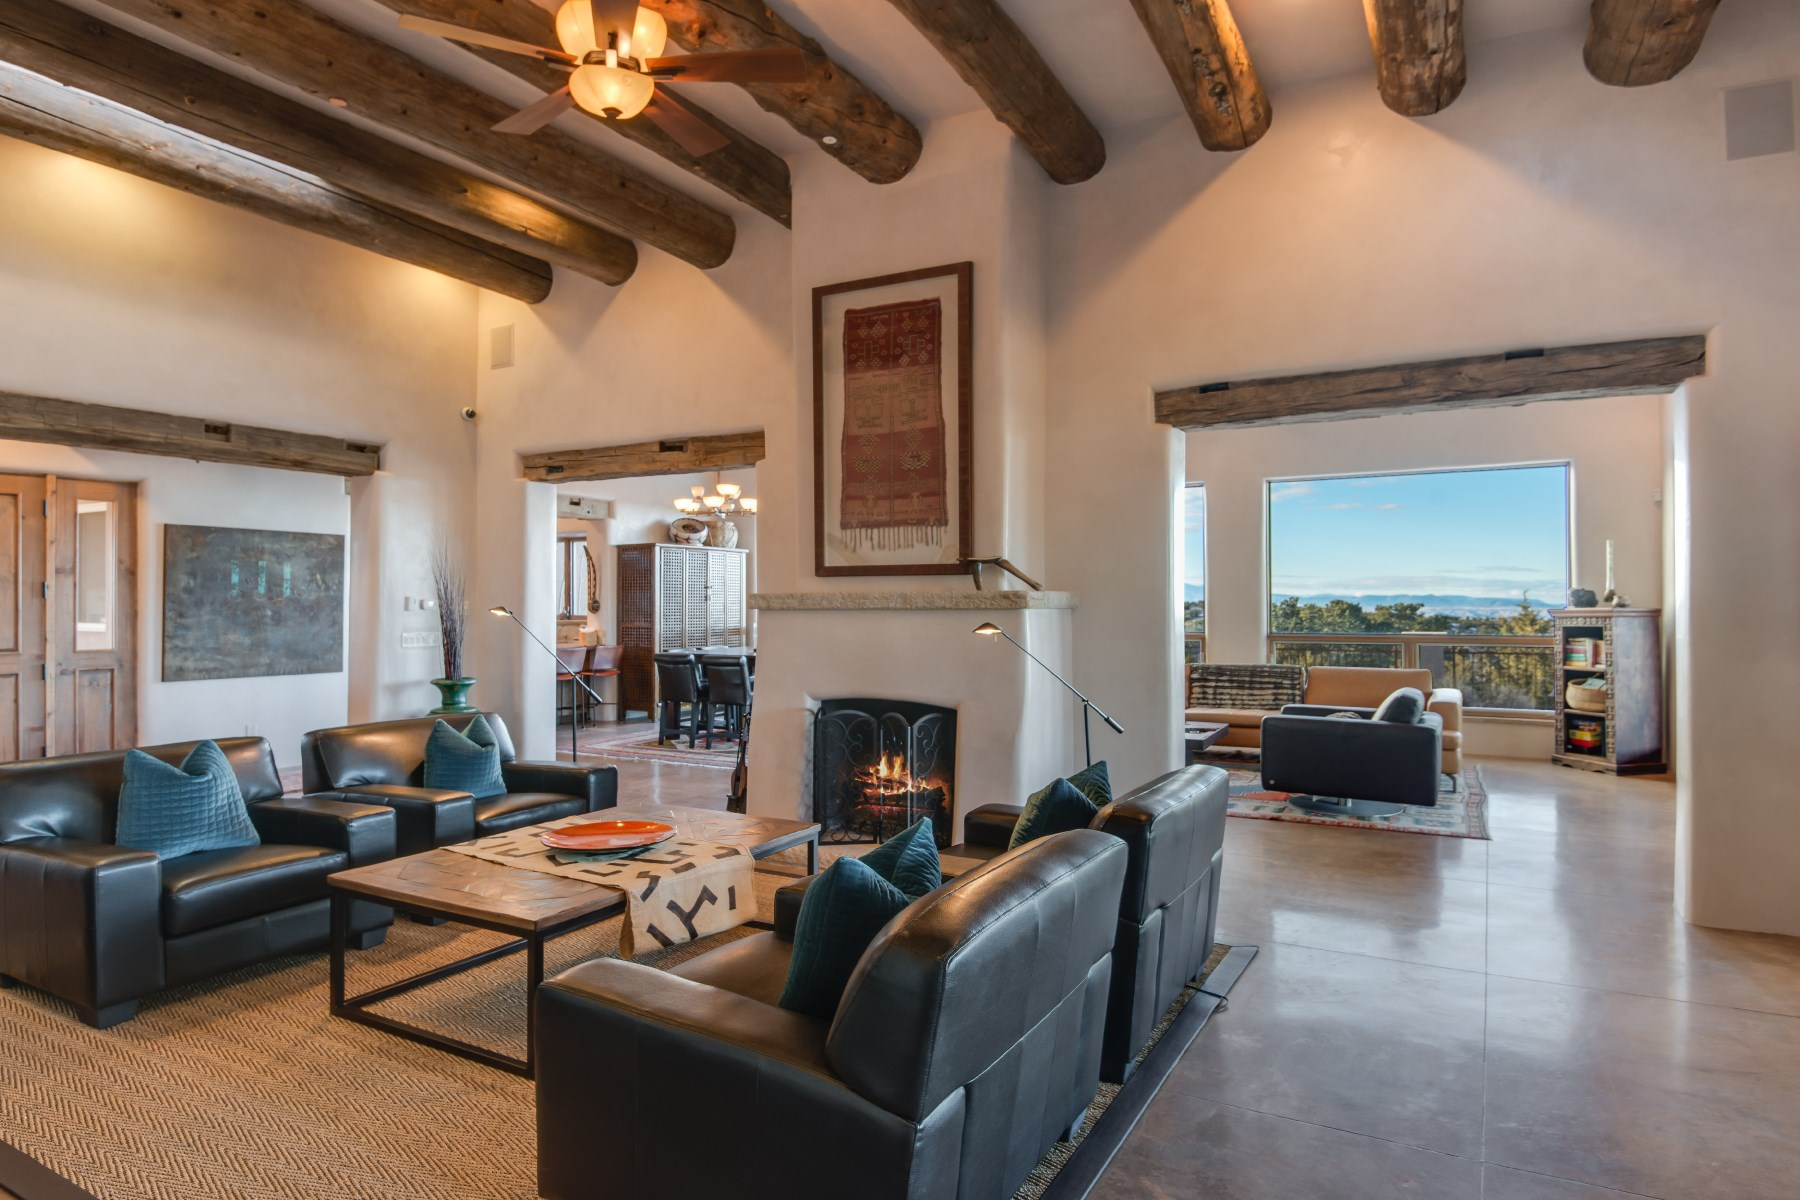 Single Family Home for Sale at 2971-2973 Tesuque Overlook Monte Sereno, Santa Fe, New Mexico 87506 United States